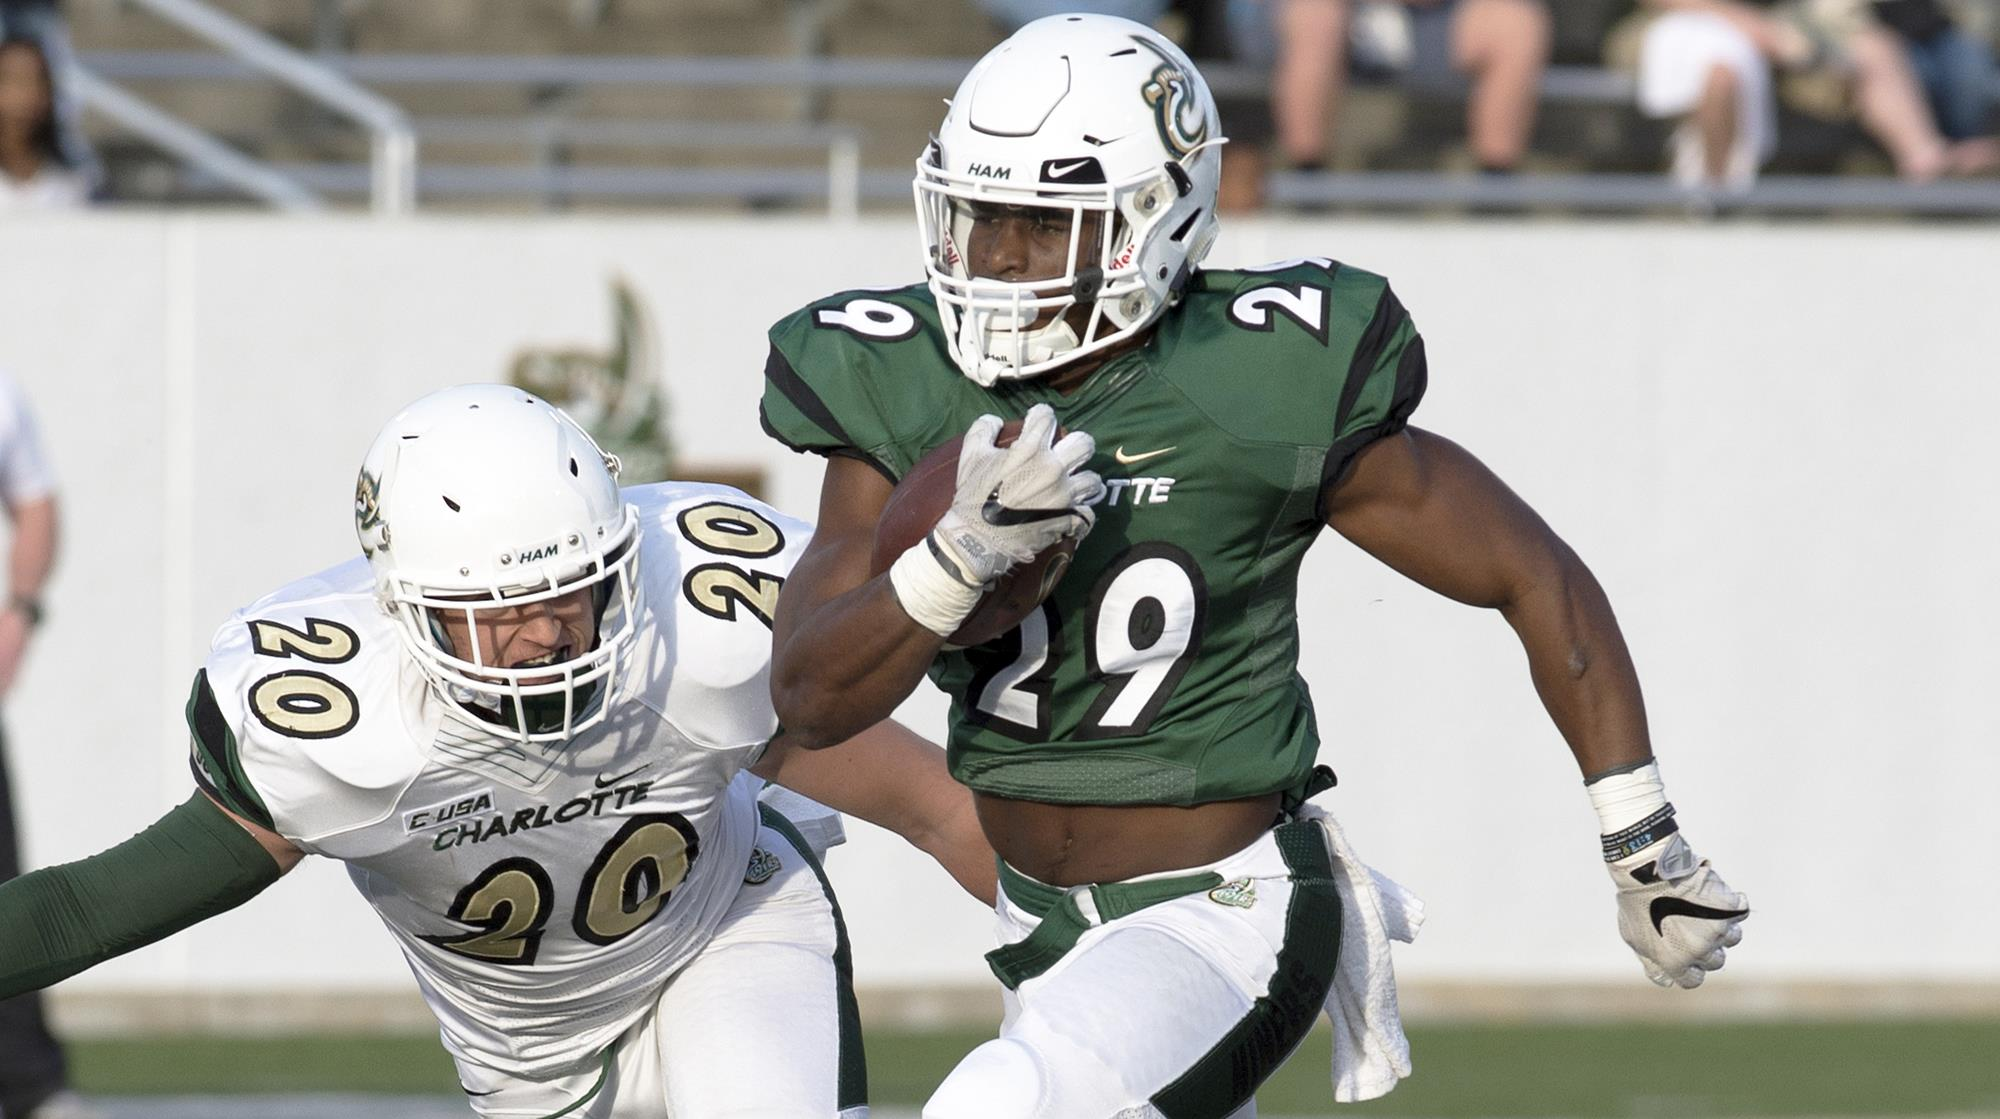 new style 424e5 ad8d8 Annual Spring Game Set for April 13 - Charlotte Athletics